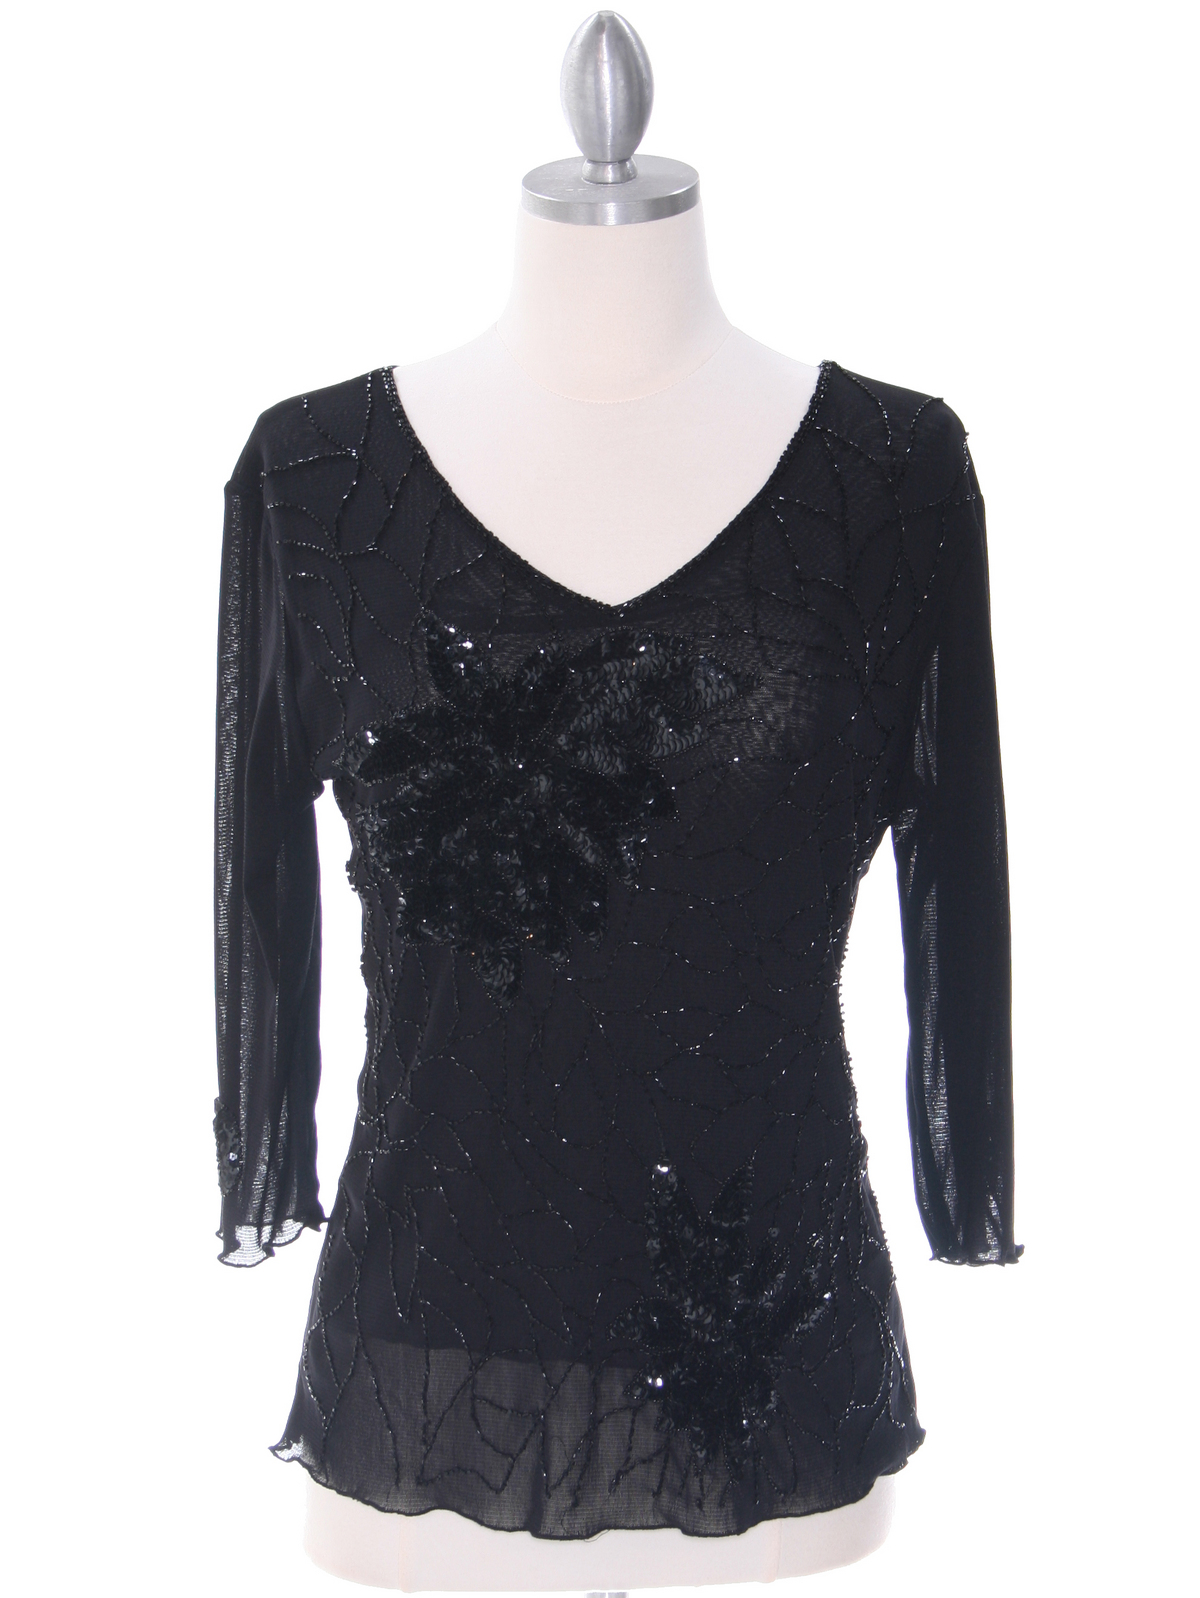 2289 Black Beaded Top - Front Image